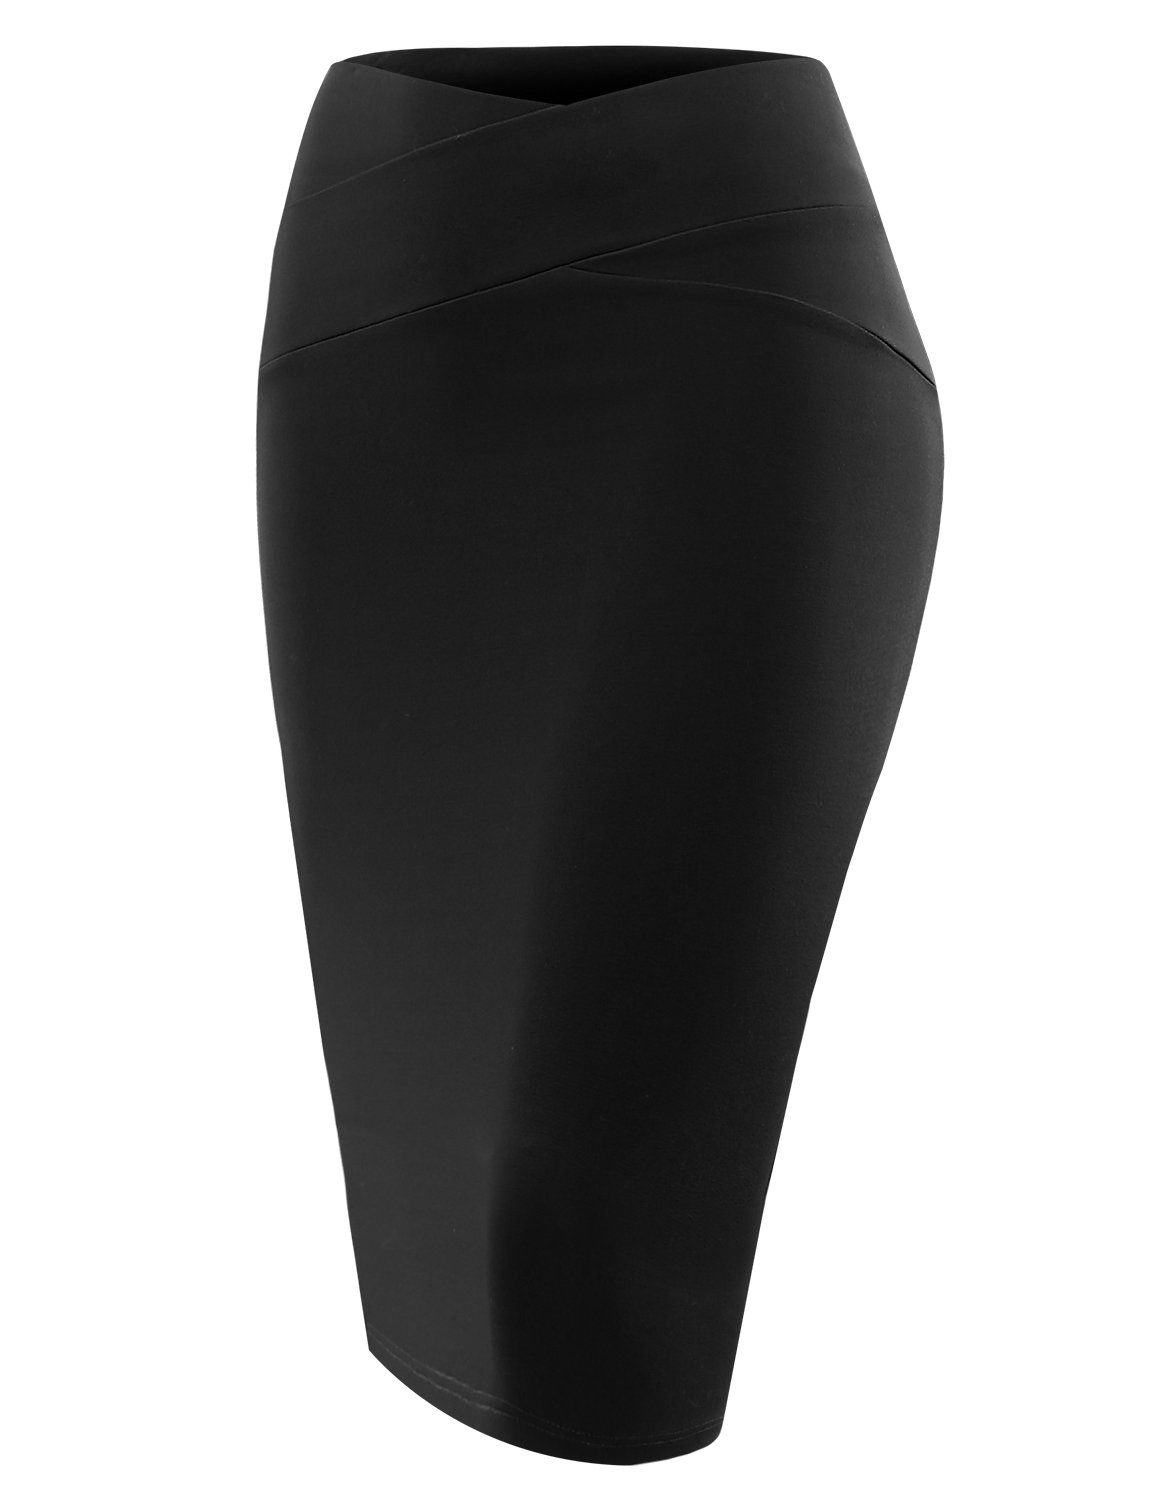 ALL FOR YOU Women's Slim Fit Front Detailed Pencil Skirt Black Medium